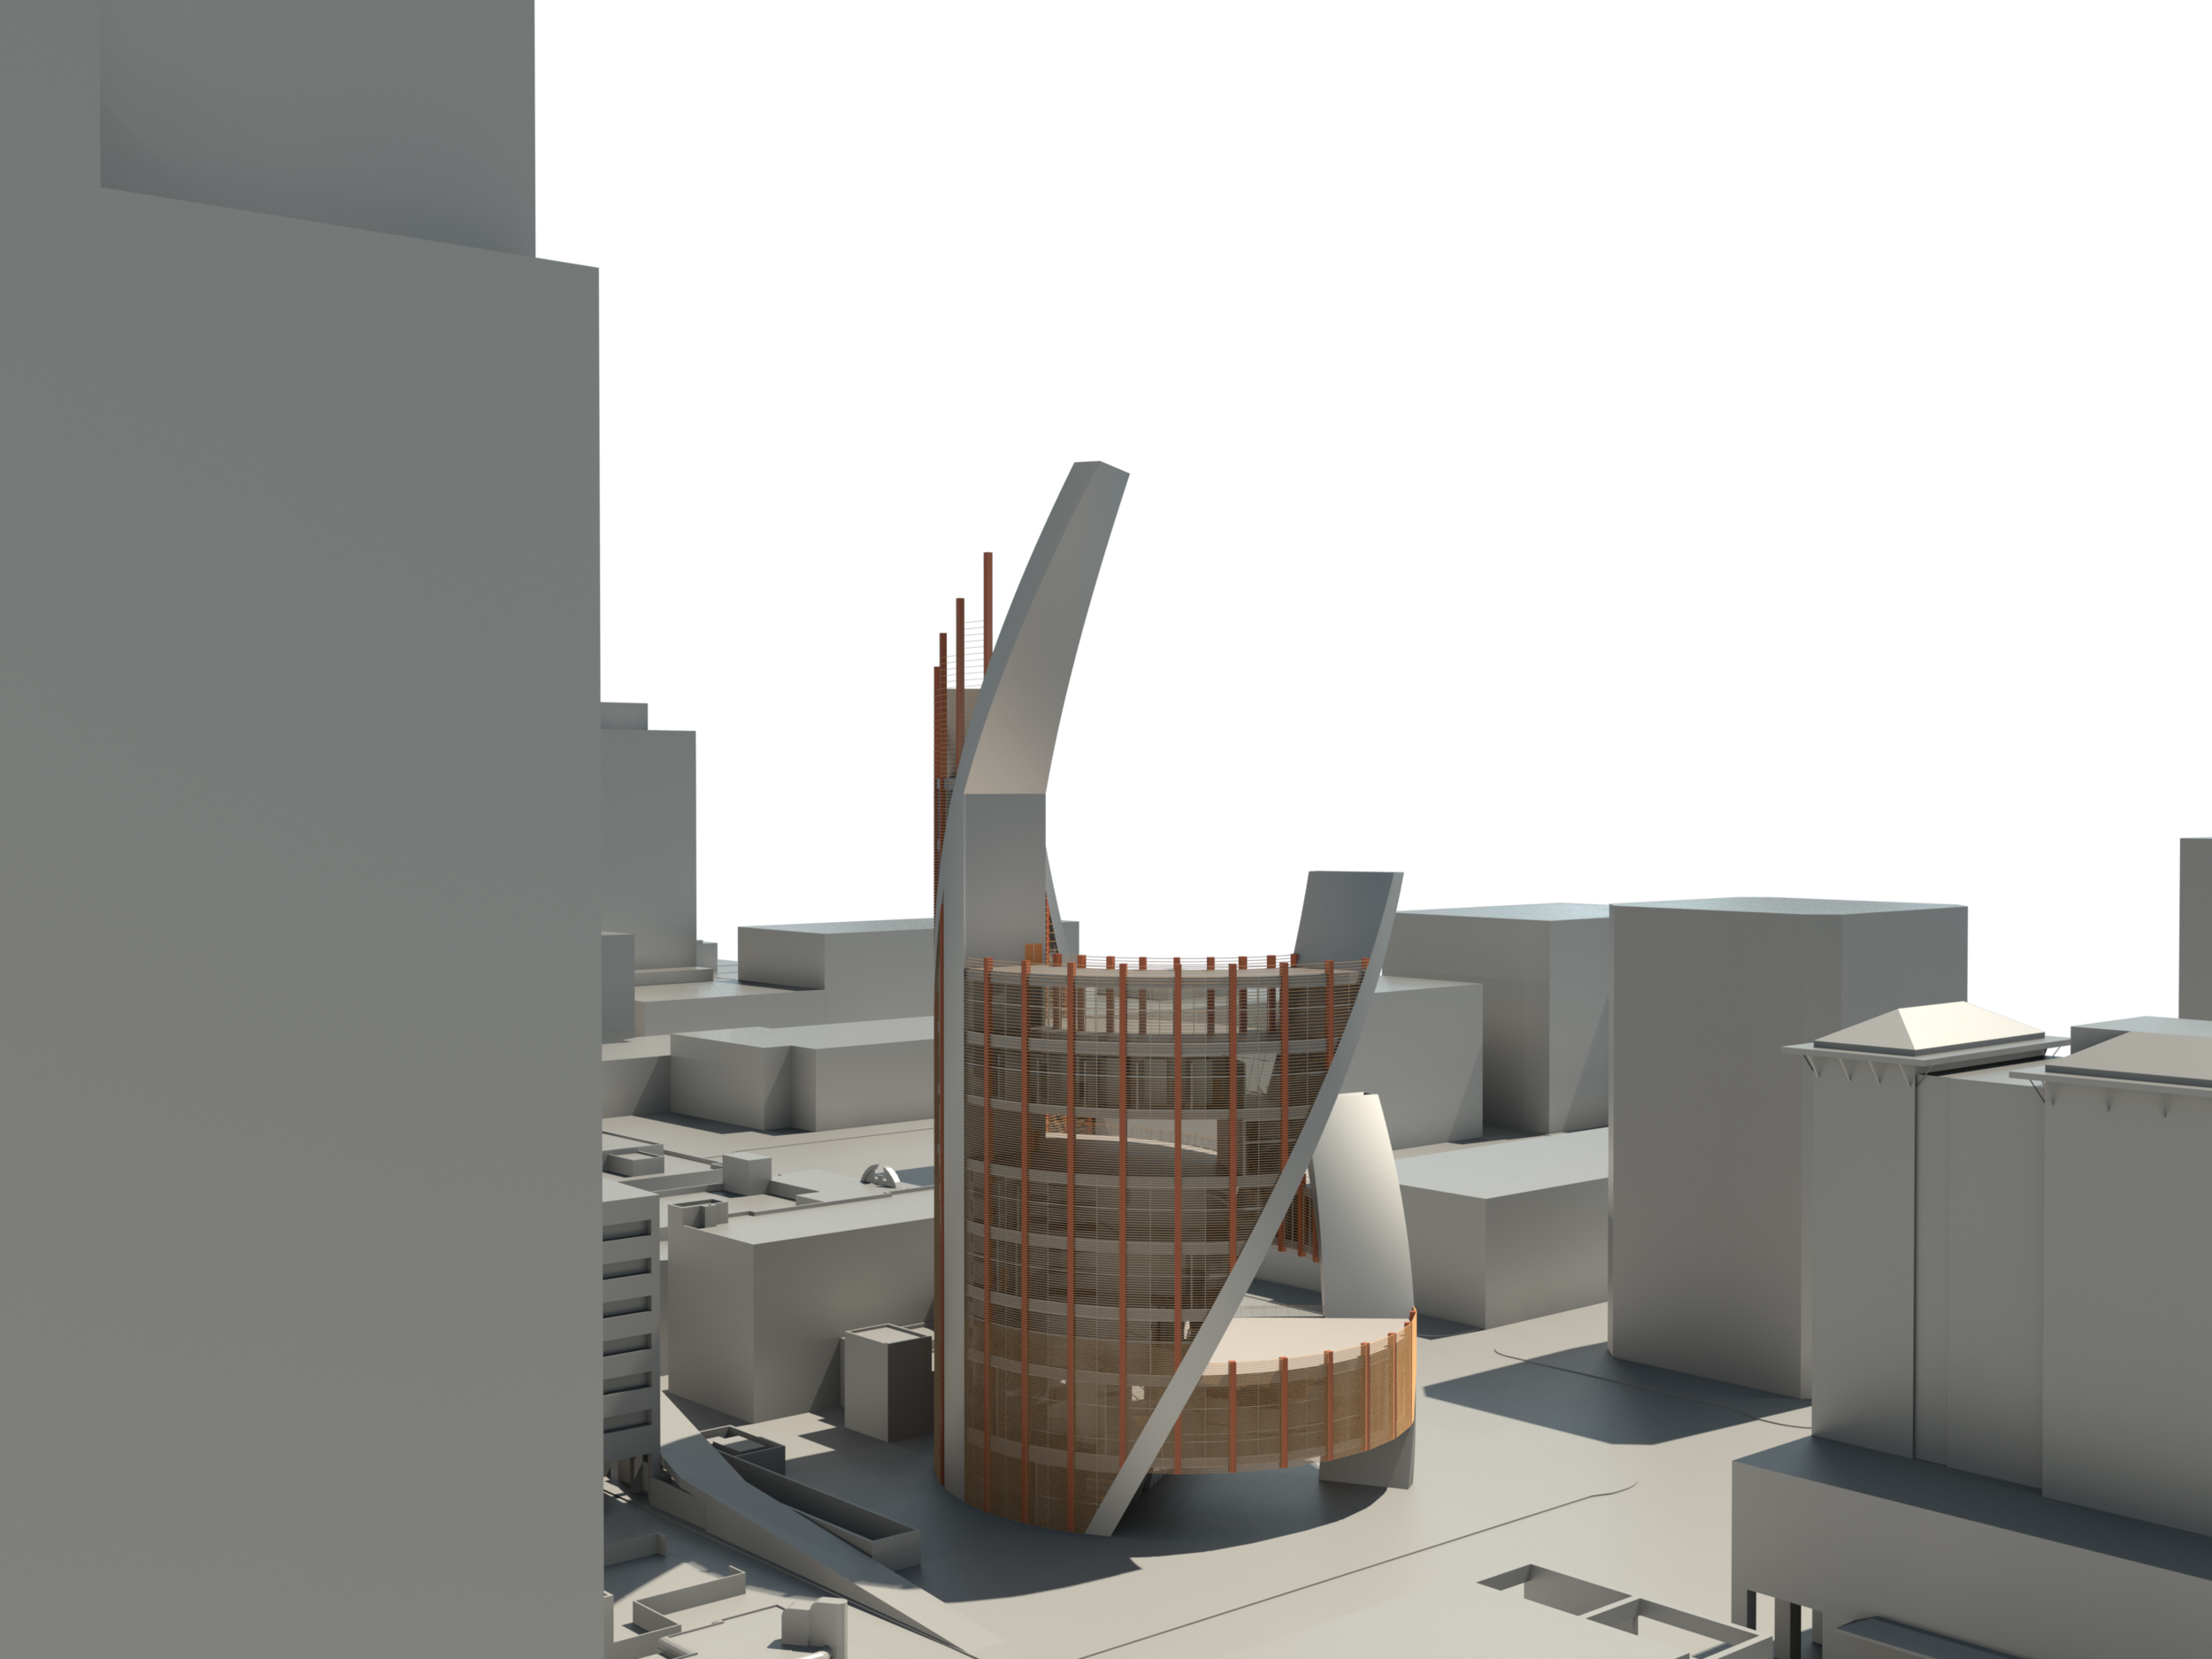 model.rvt_2013-Dec-12_12-47-30AM-000_3D_View_15 (1).png